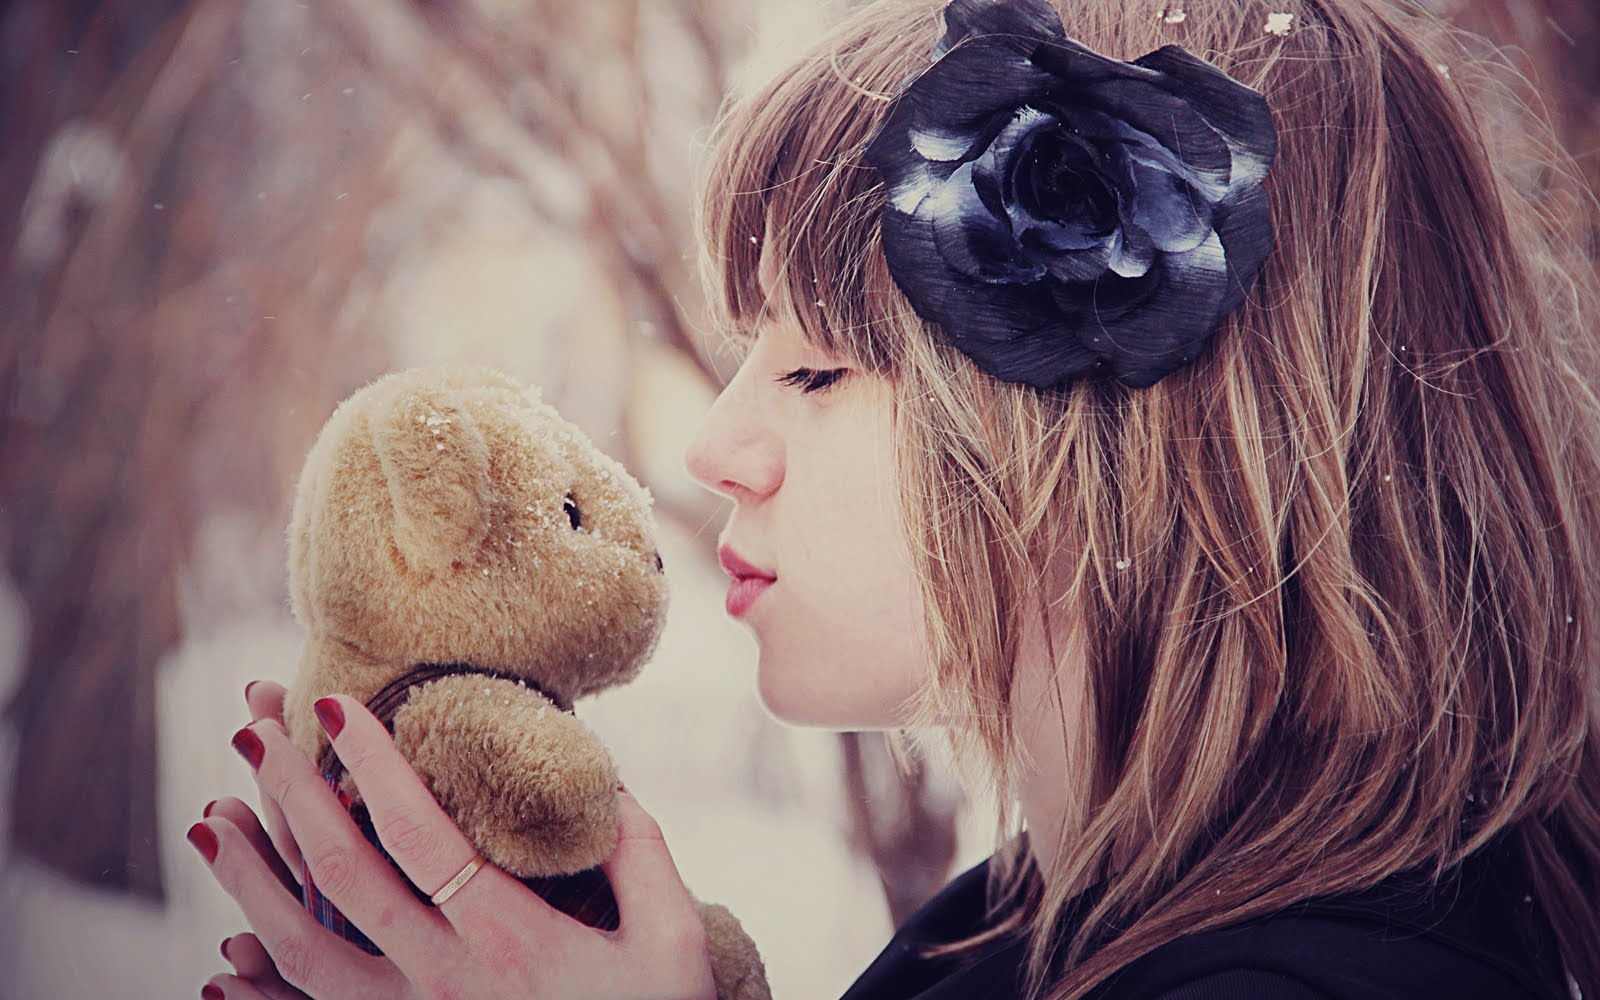 Love Romantic Kiss Hd Wallpaper : Mood Girl Kiss Bear Toy Flower Snow Winter HD Love Wallpaper Love Wallpapers Romantic ...